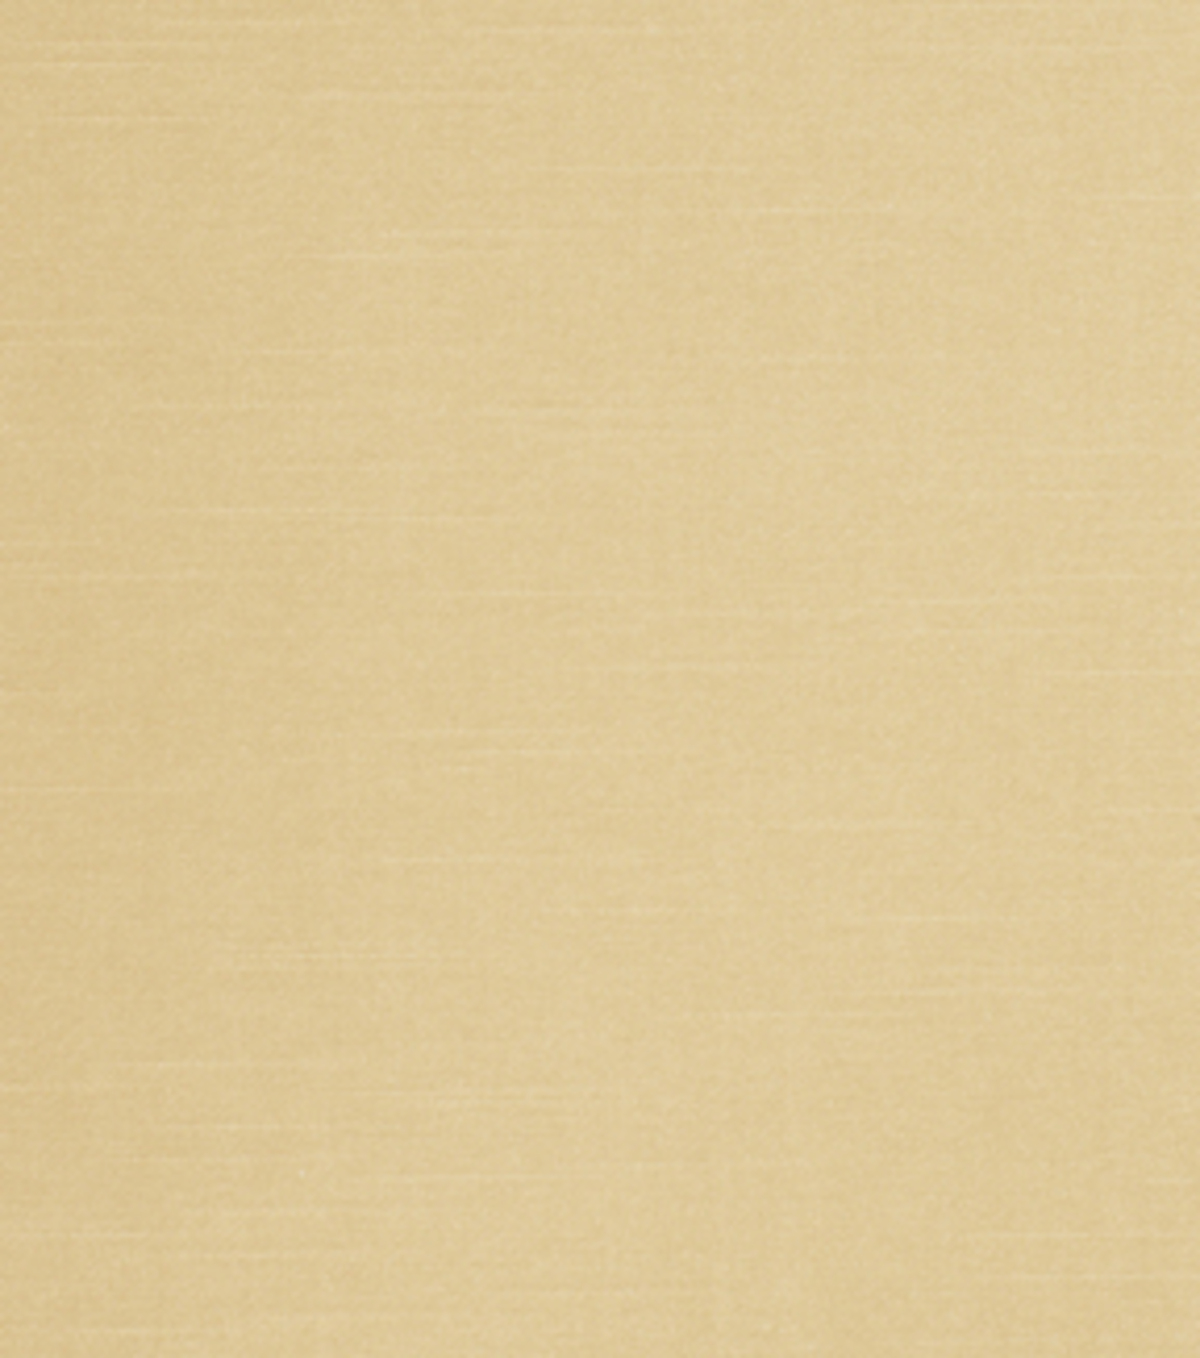 Home Decor 8\u0022x8\u0022 Fabric Swatch-Richloom Studio Silky Bisque